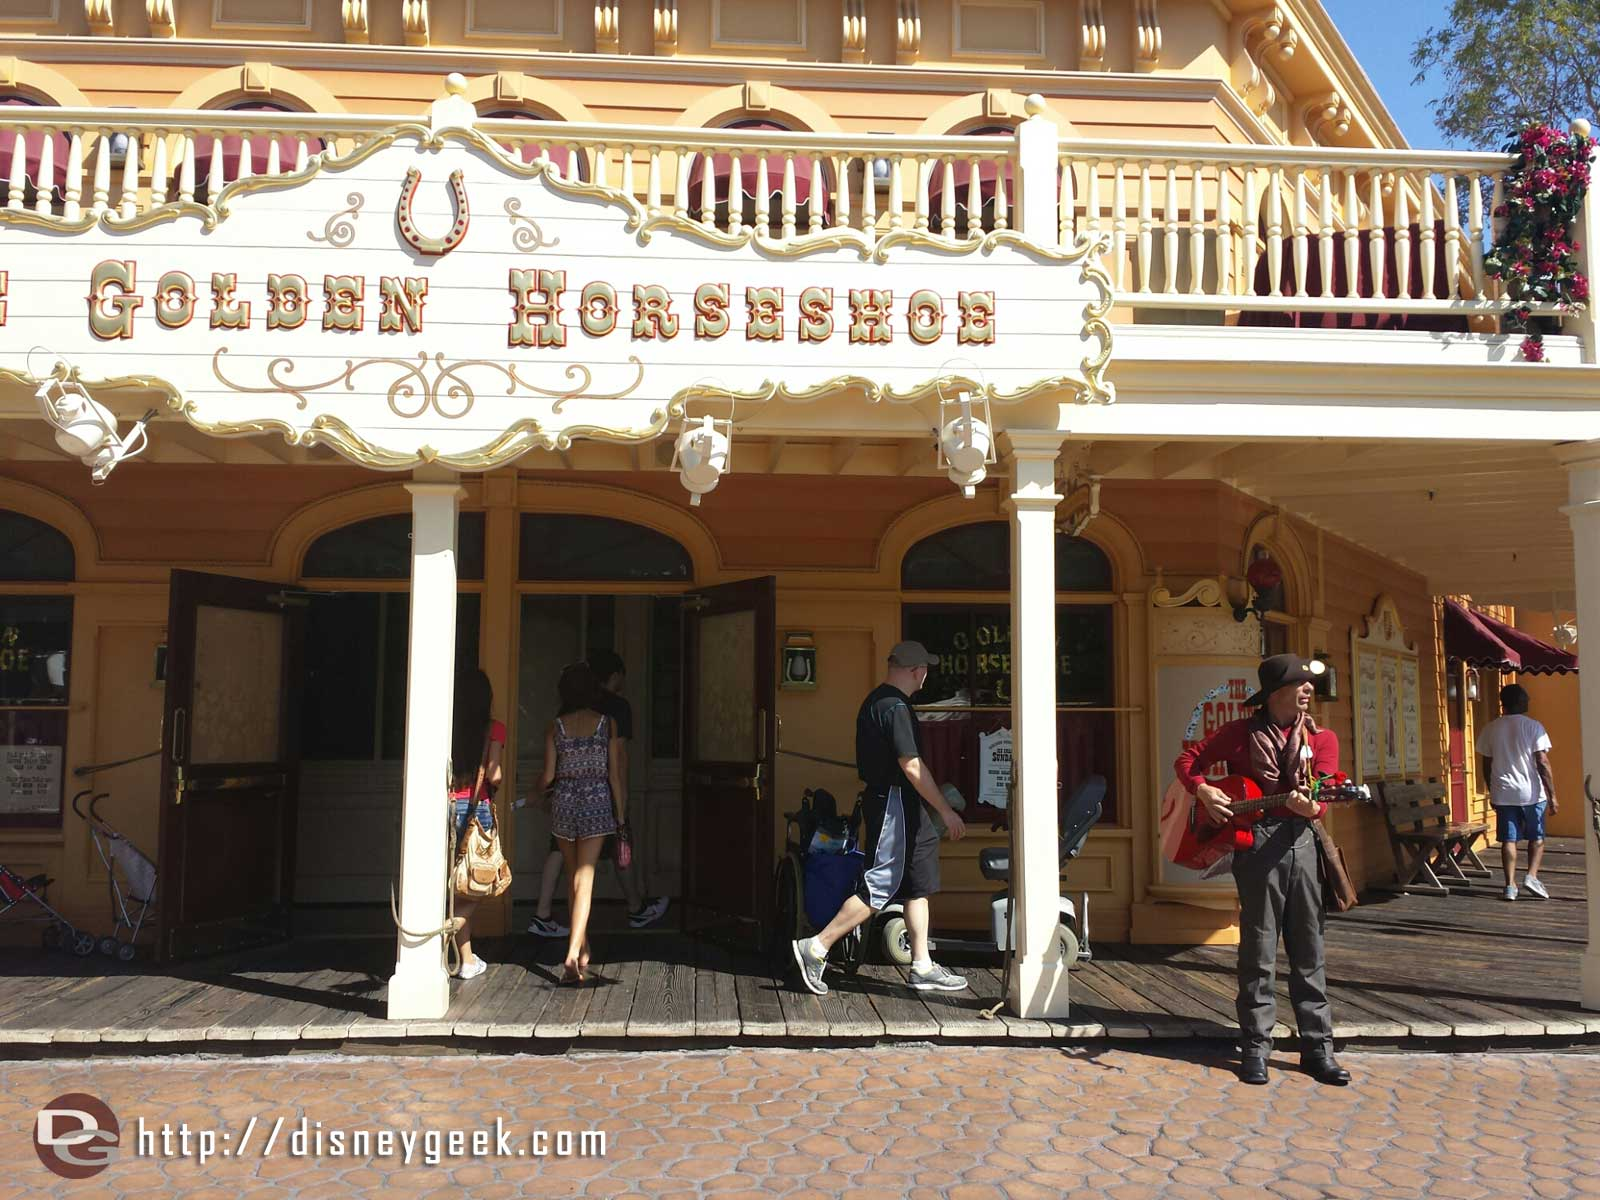 Billy was roaming around outside the Golden Horseshoe